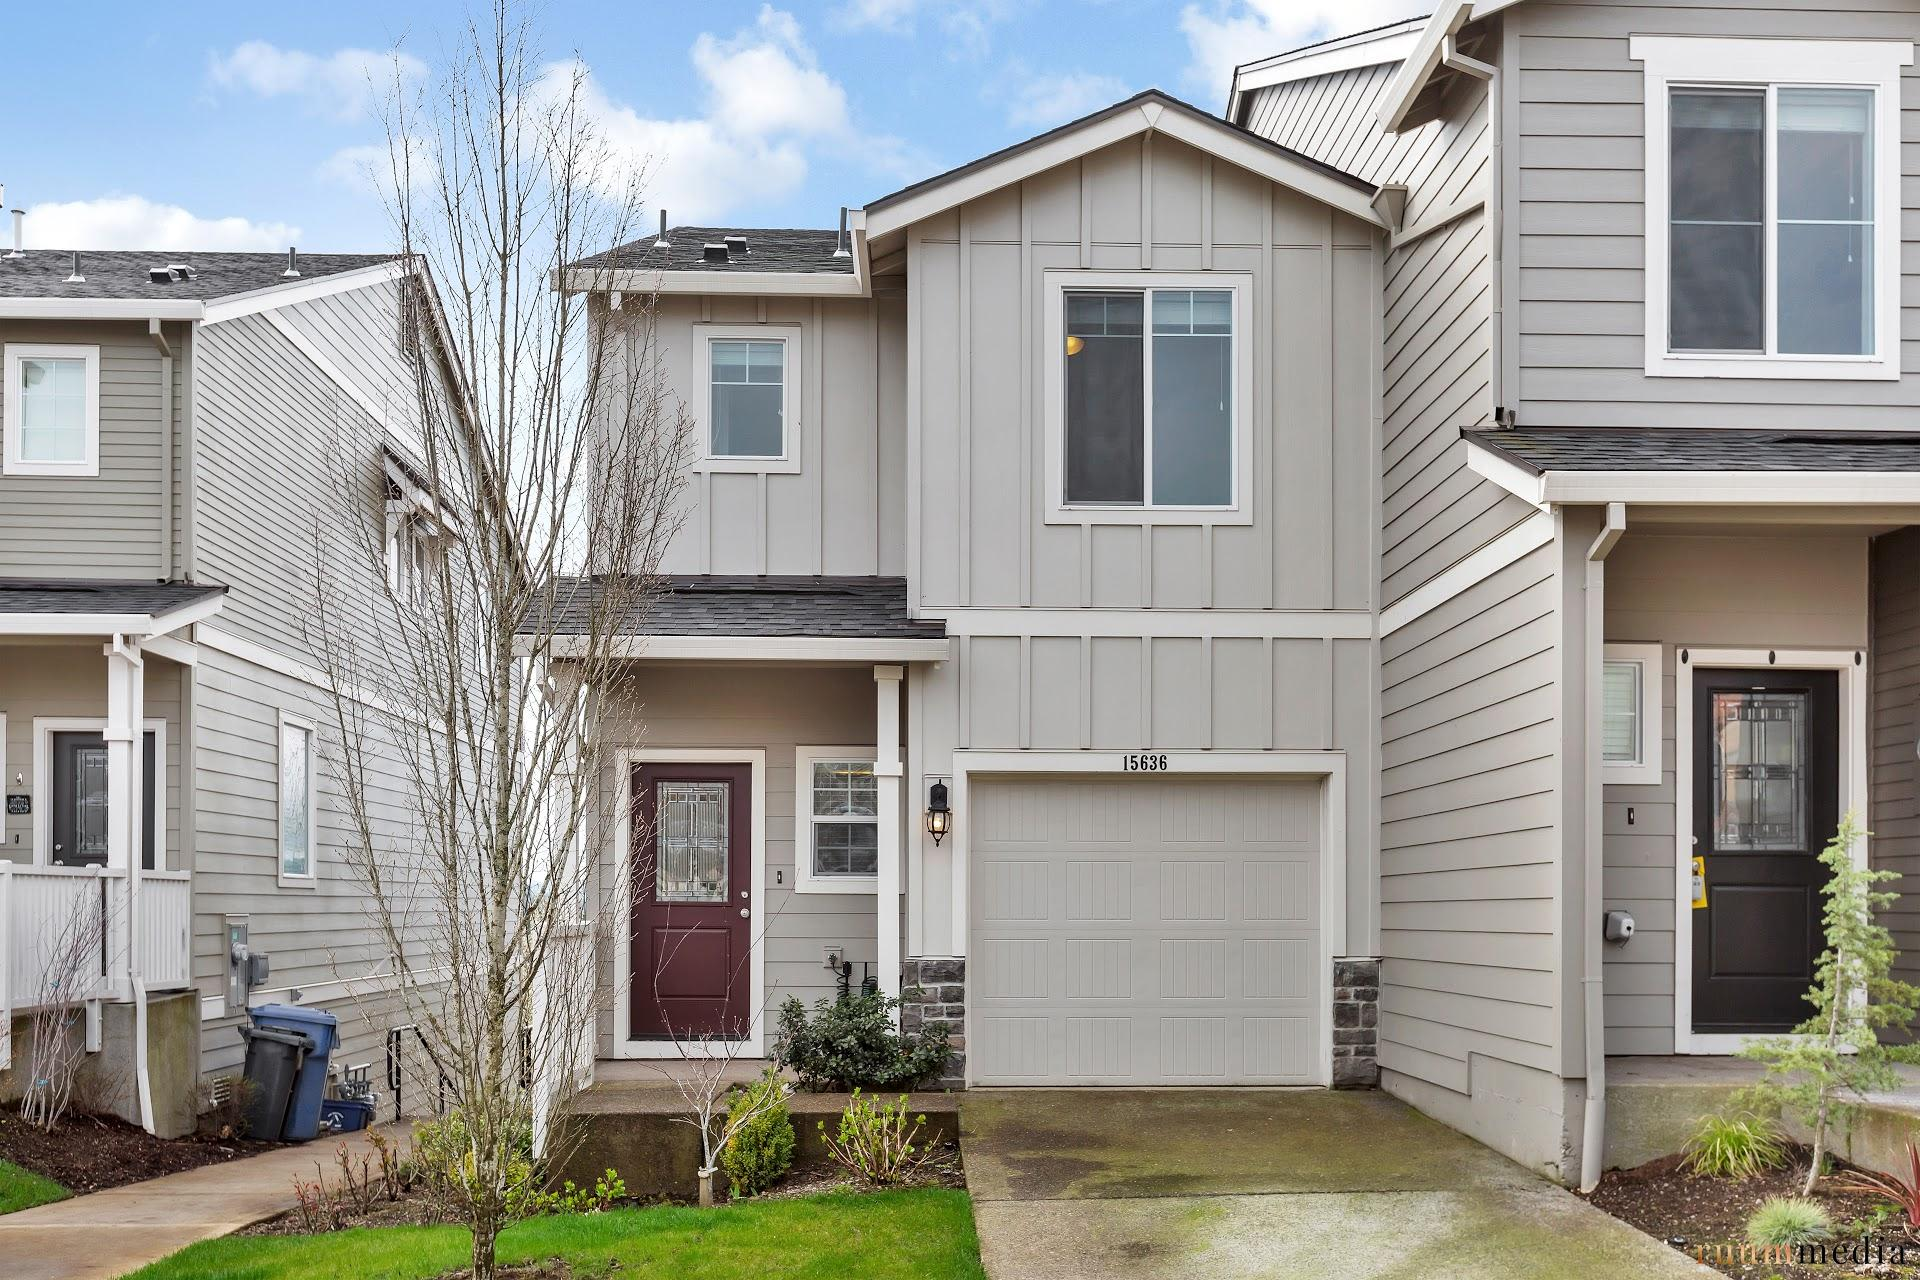 JUST LISTED 15636 SE Vivian Way, Happy Valley 97o86